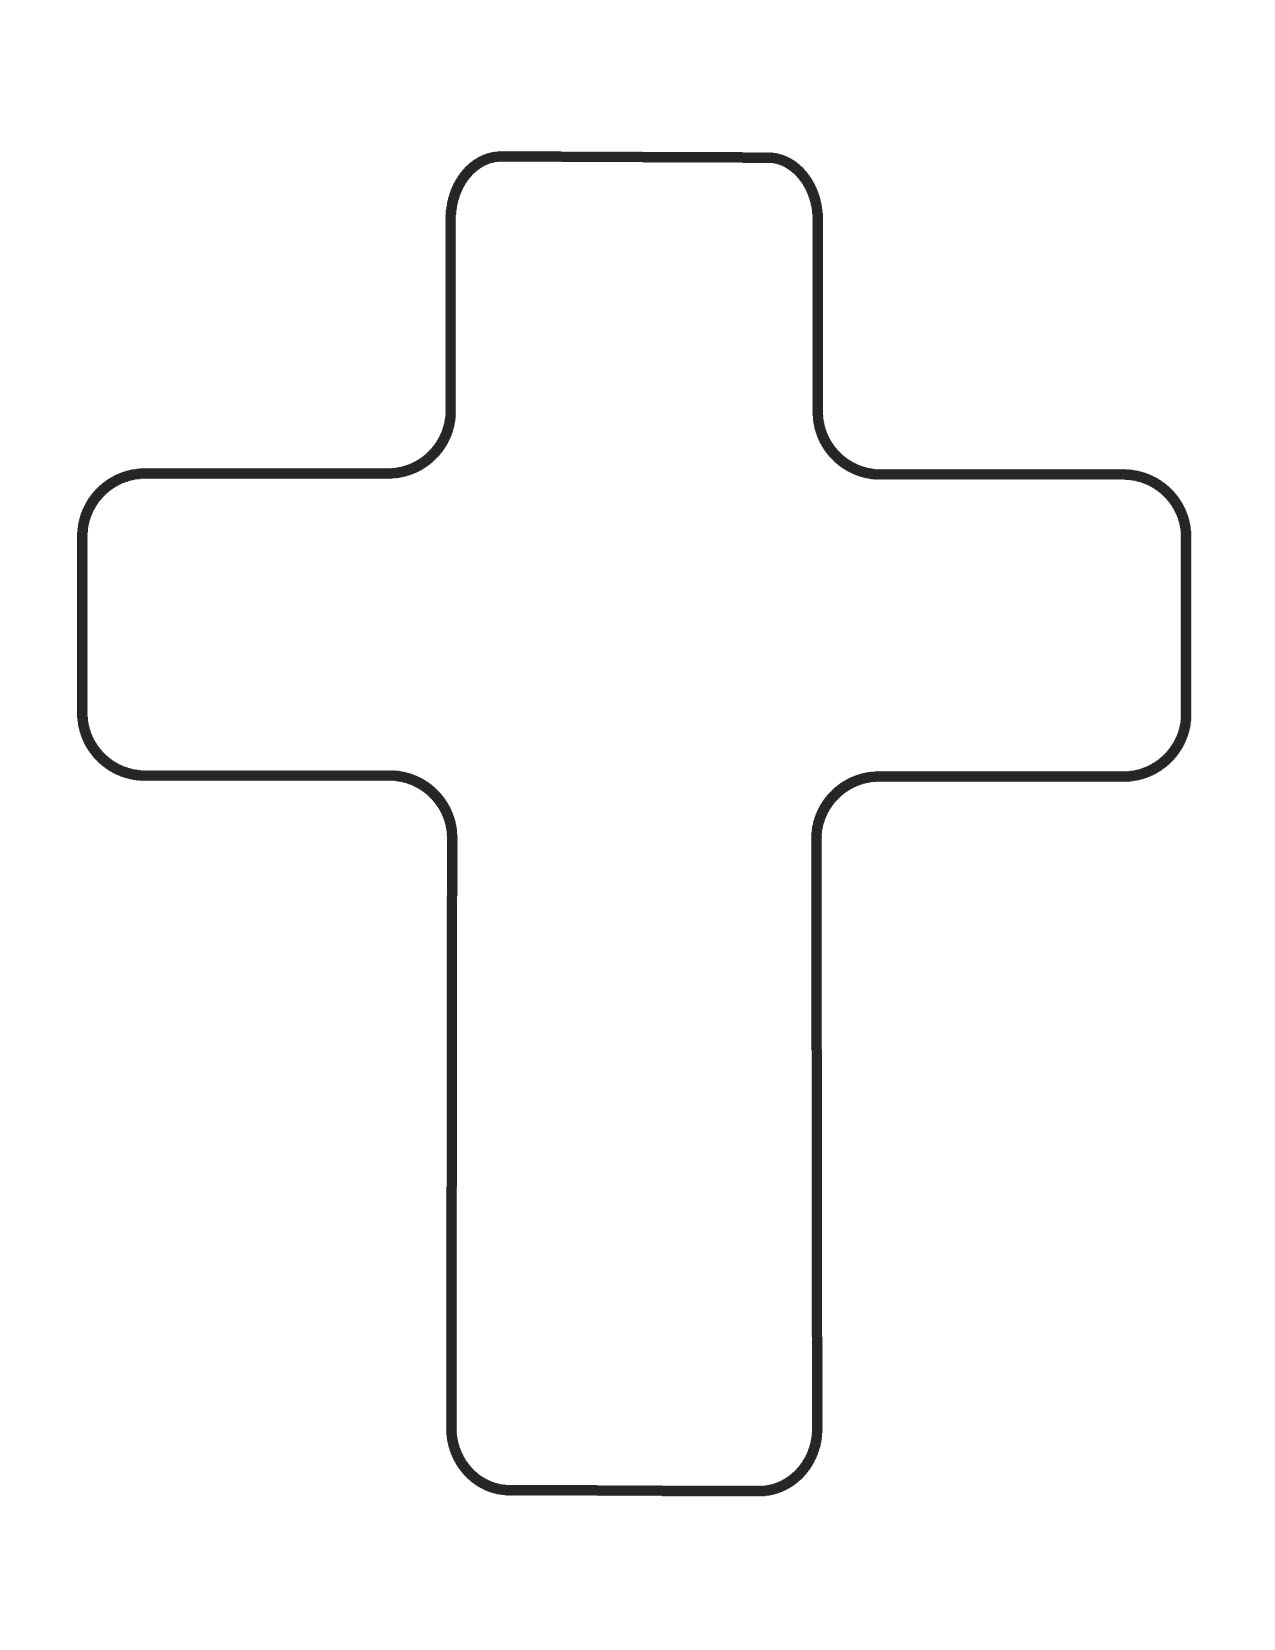 Free Christian Cross Clipart, Download Free Clip Art, Free.